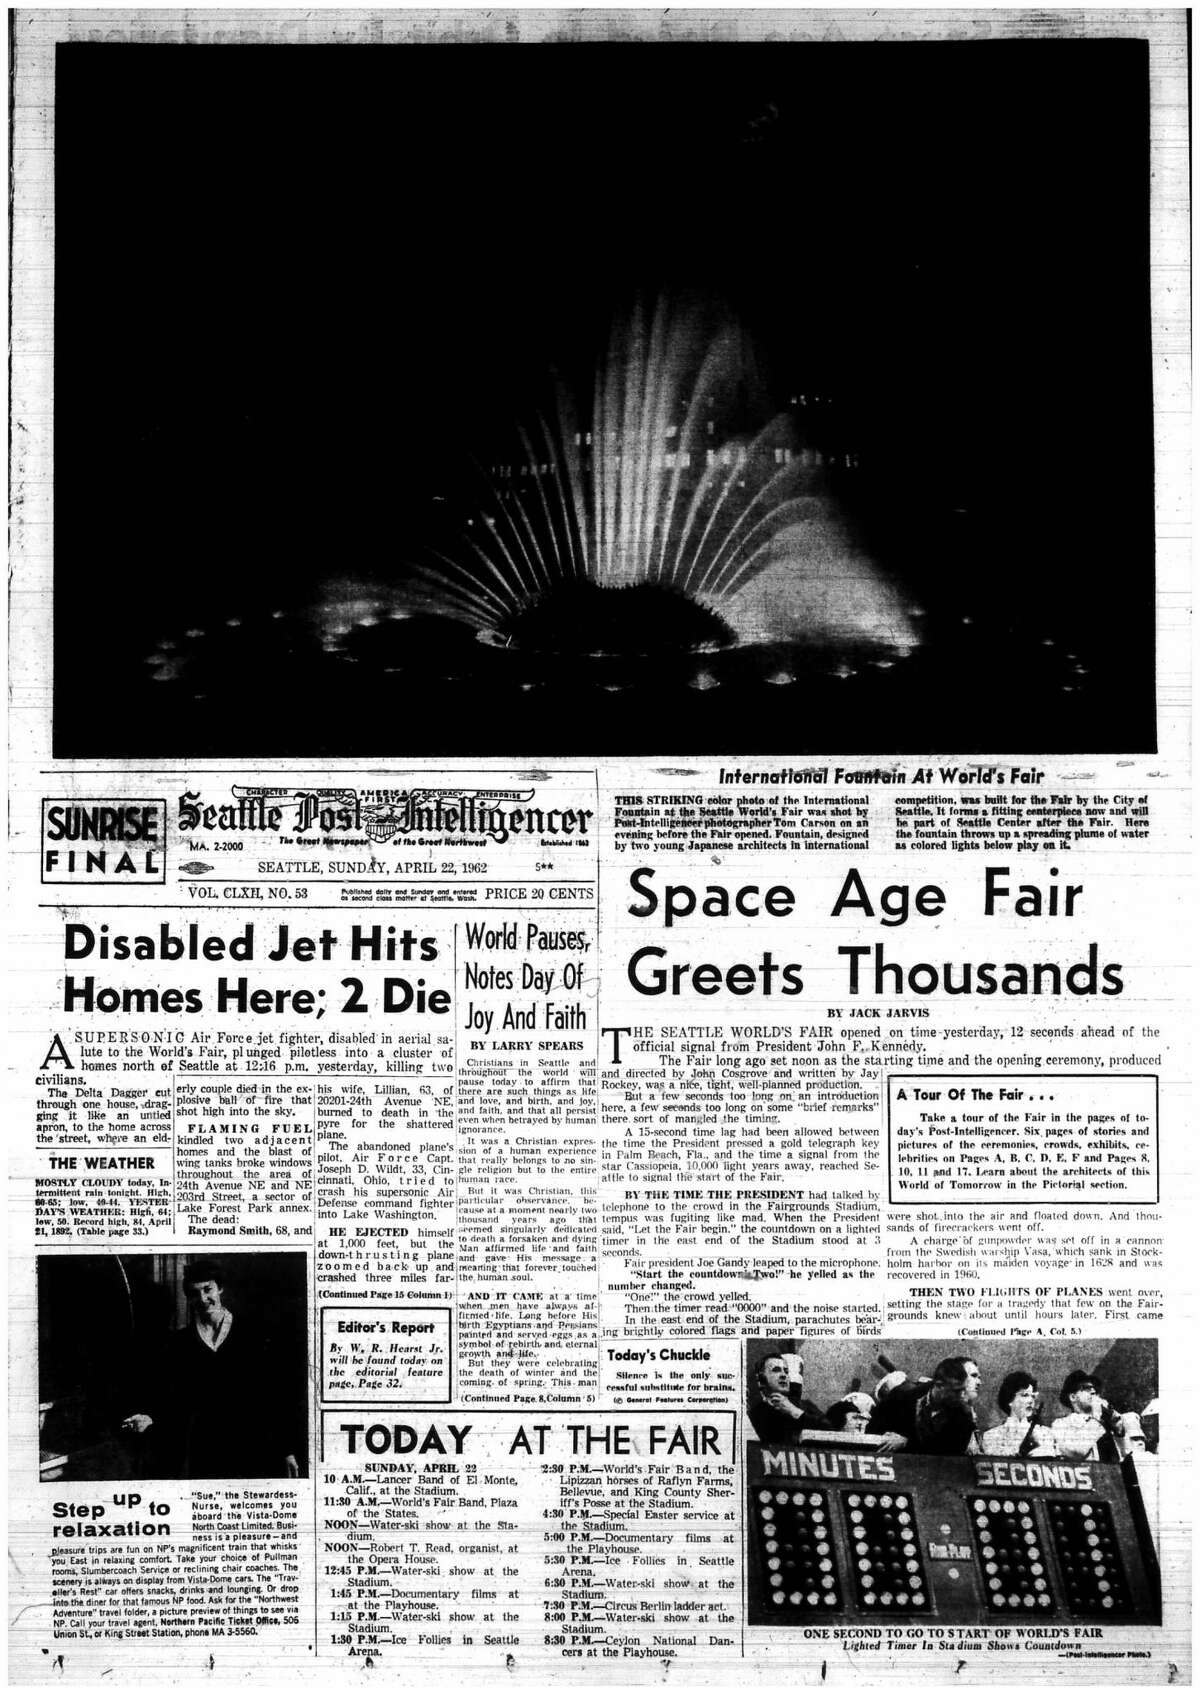 The P-I featured Seattle Center's International Fountain above the fold the day after the World's Fair debut, April 22, 1962.